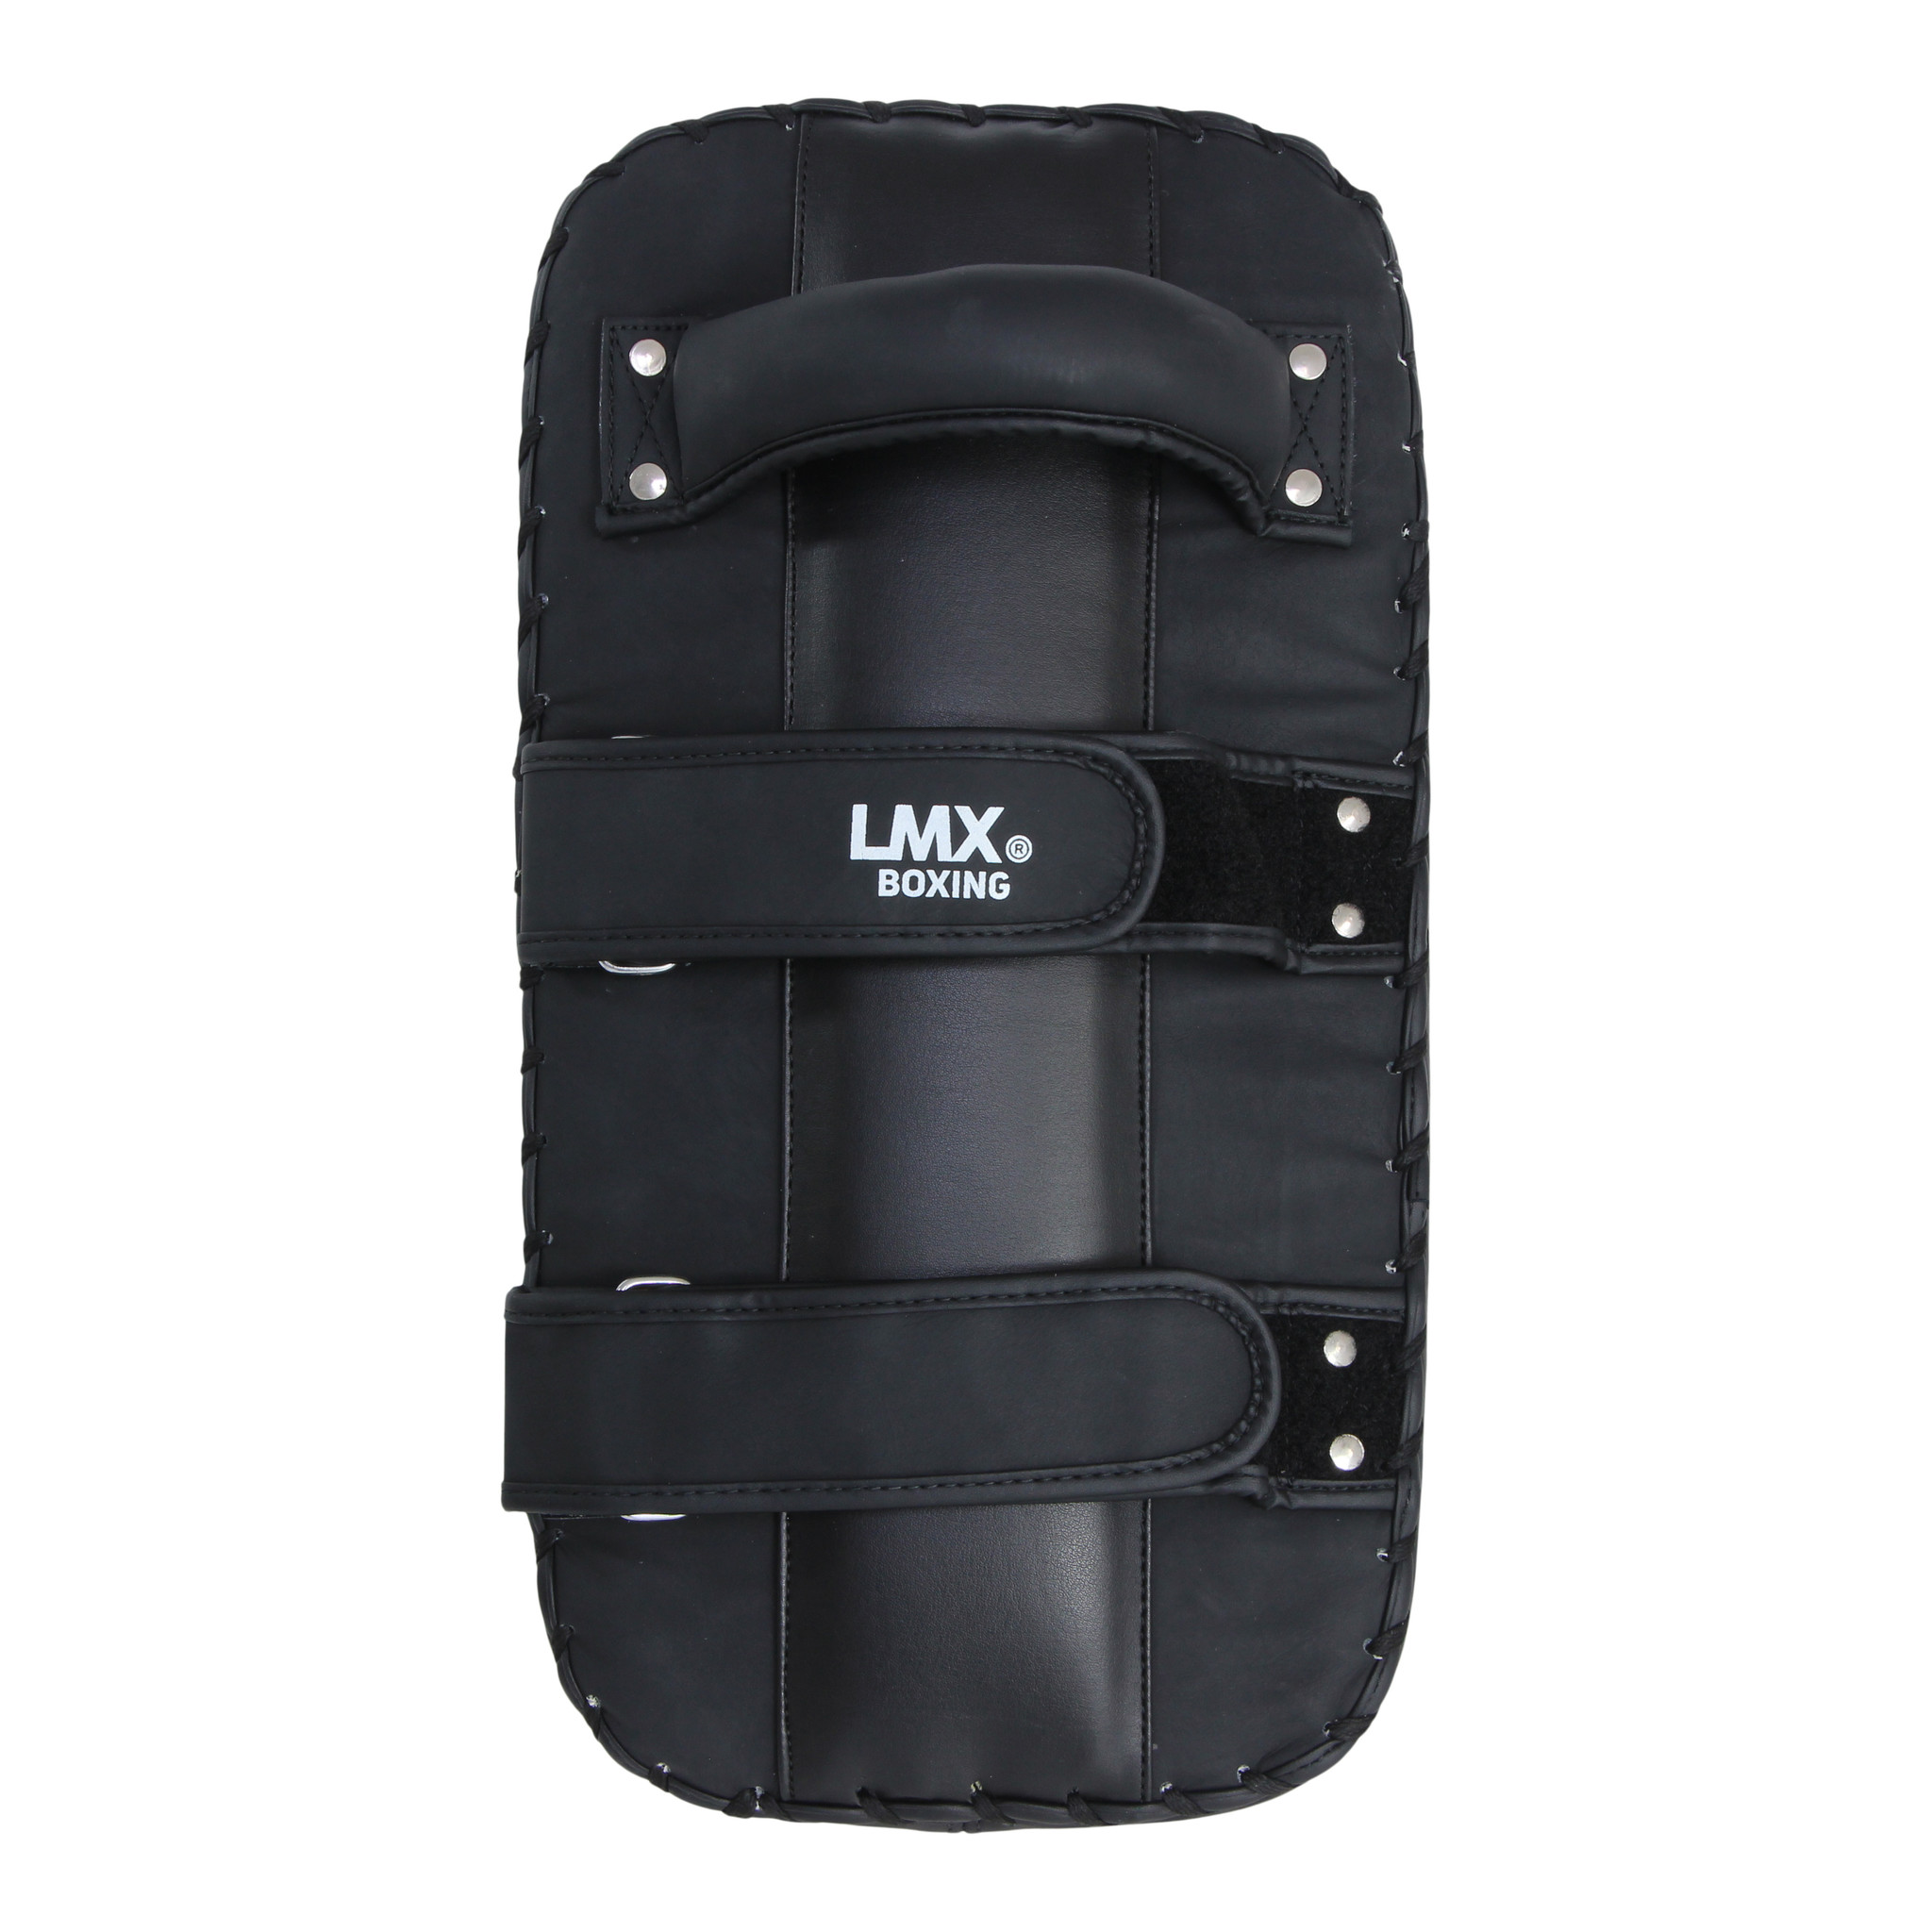 LMX.® LMX1558 LMX. Boxing Arm pads Leather - set